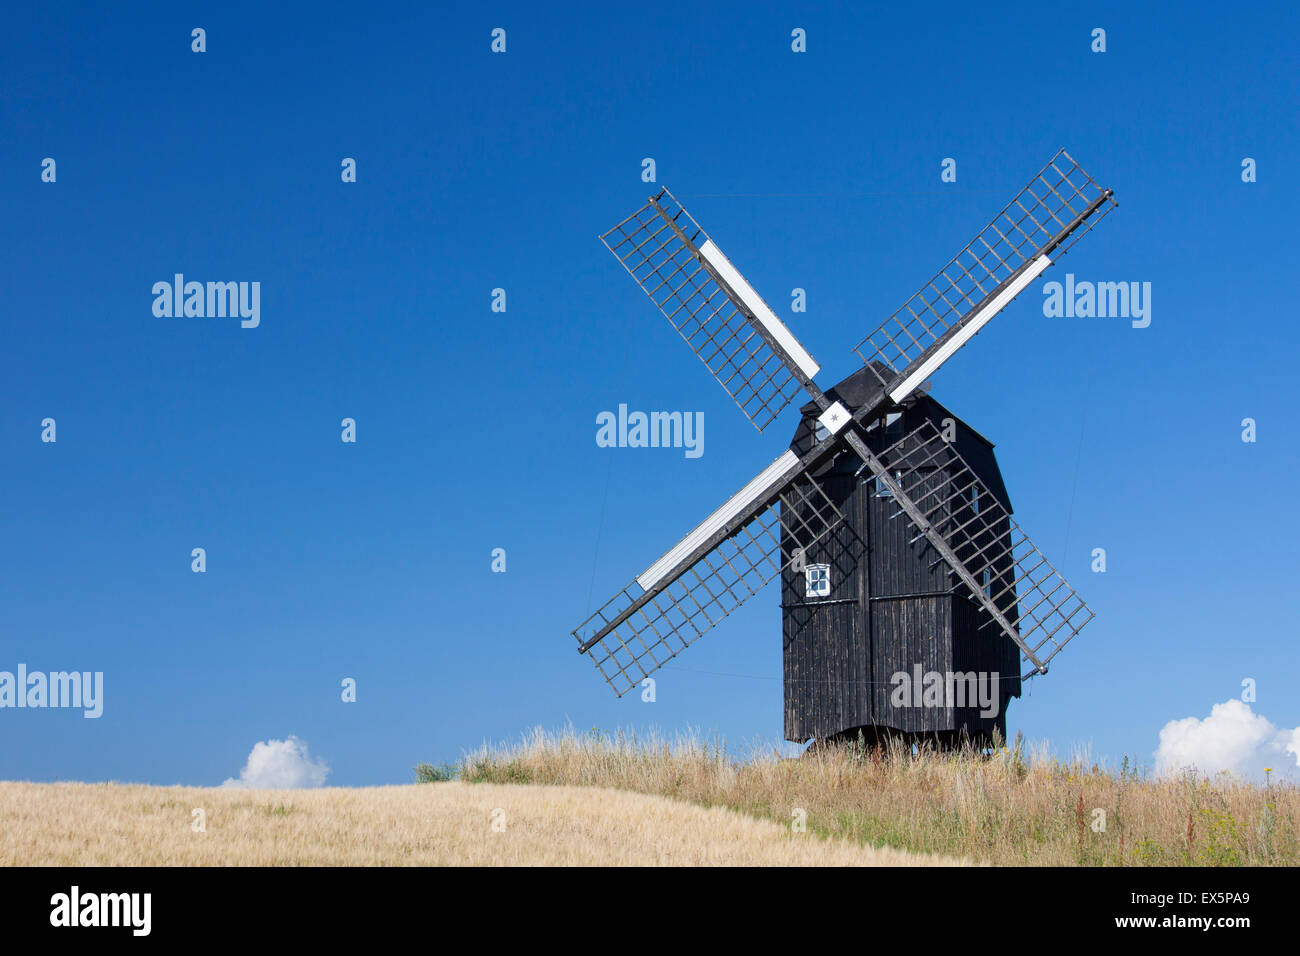 Skabersjö windmill, traditional wooden windmill in Svedala, Skane, Sweden - Stock Image